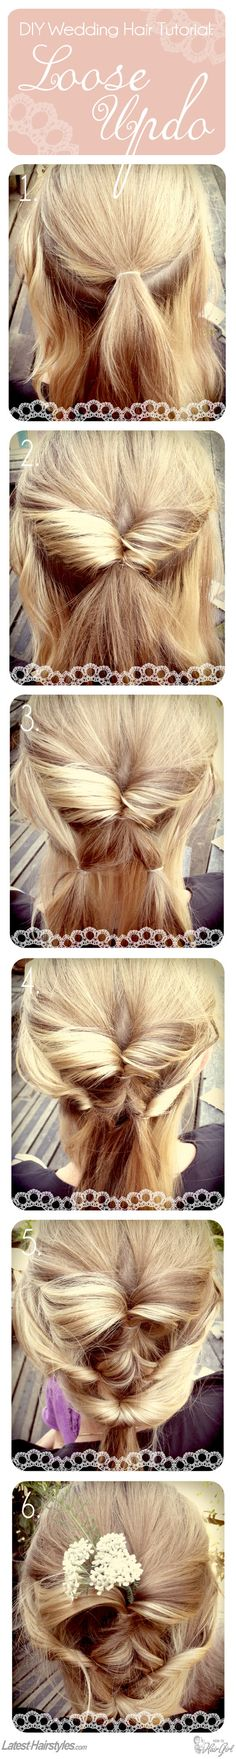 A Beautifully Loose Updo